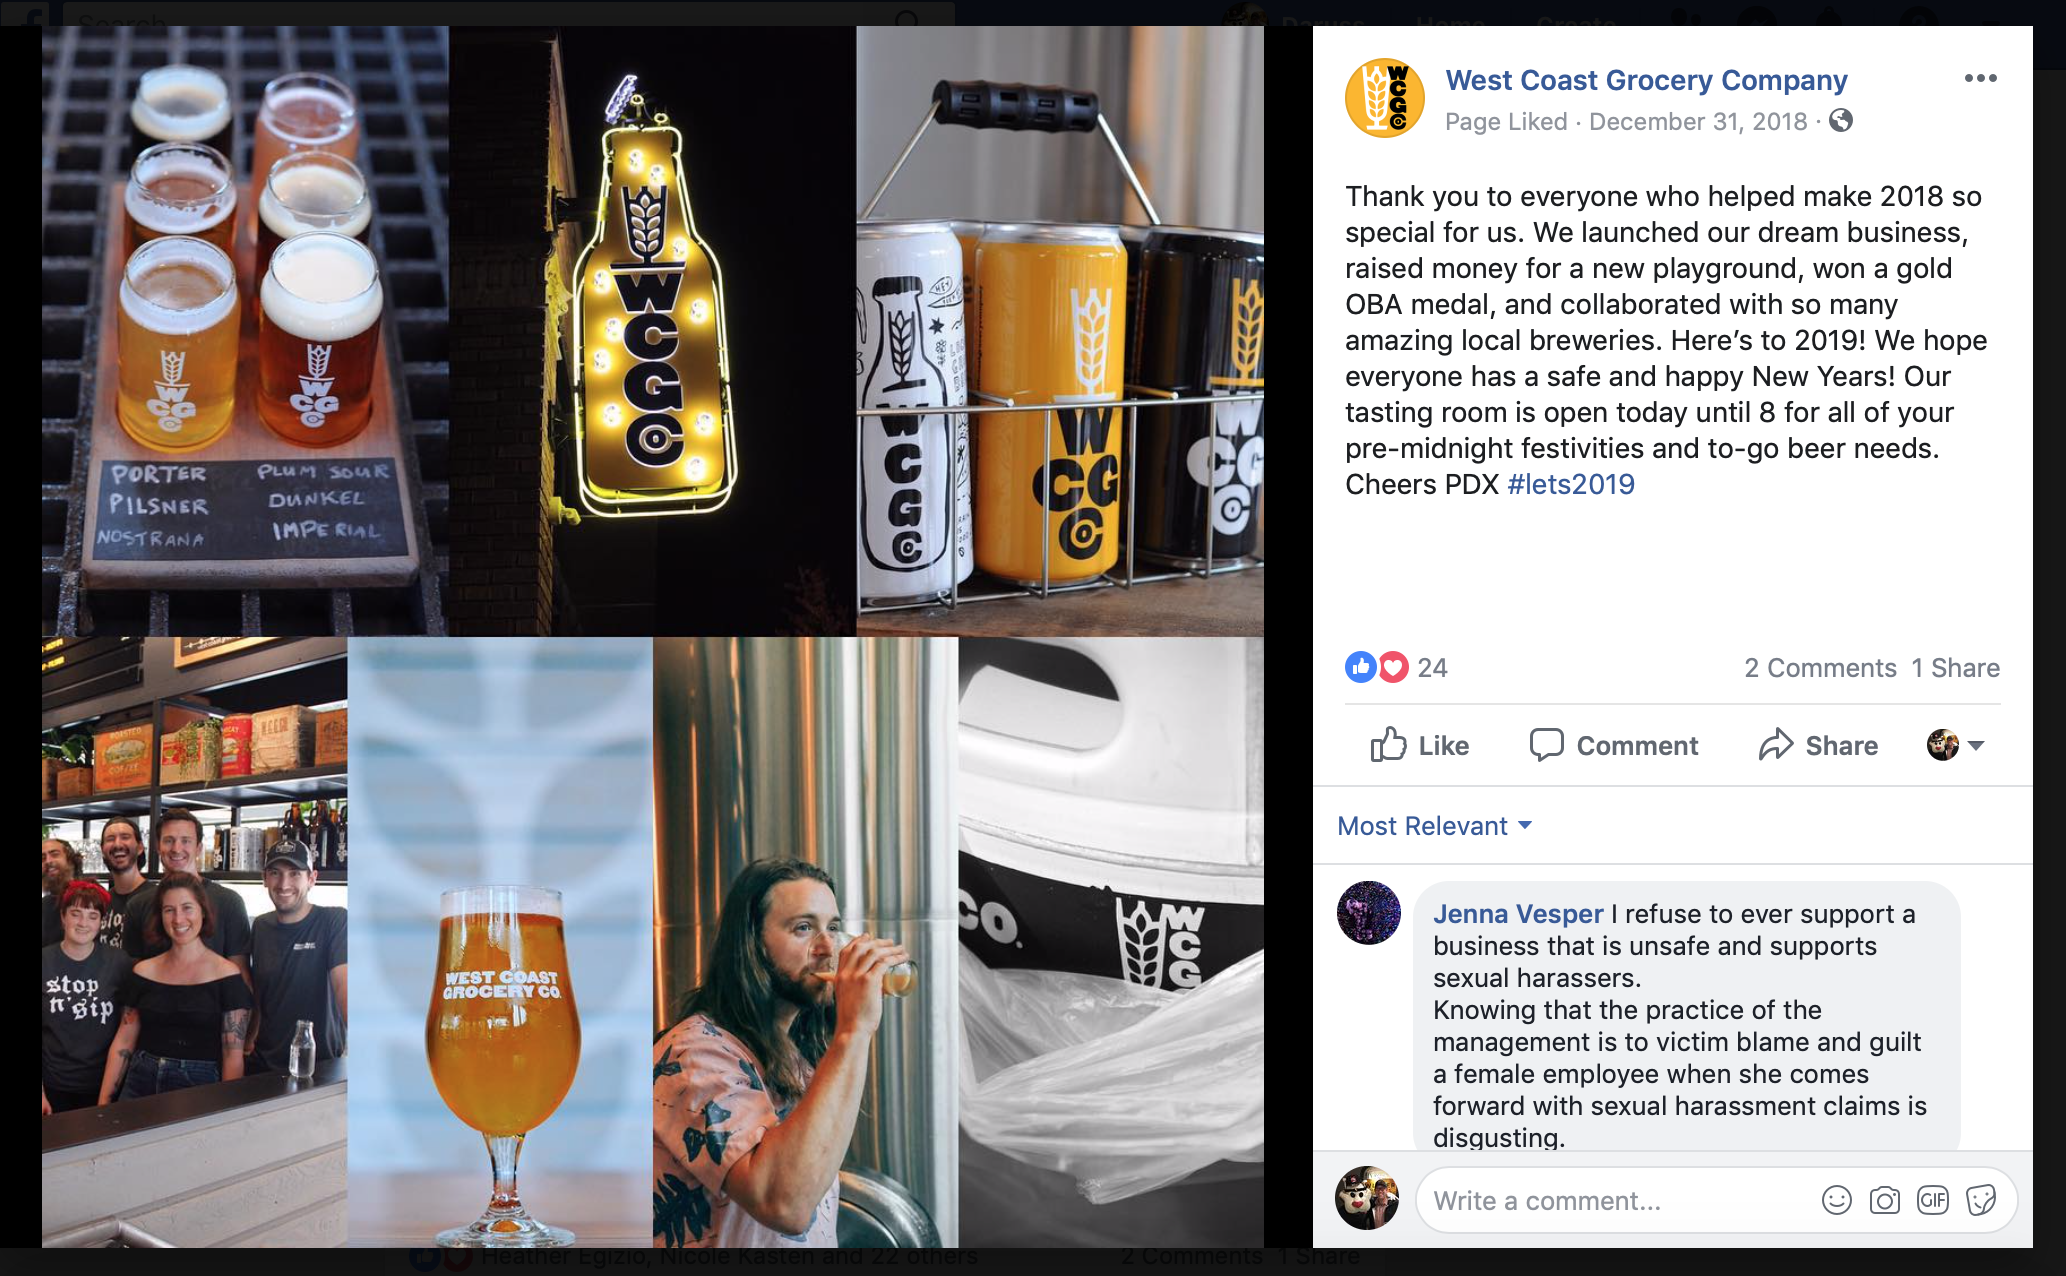 West Coast Grocery Co. Facebook Page Post on December 31, 2018